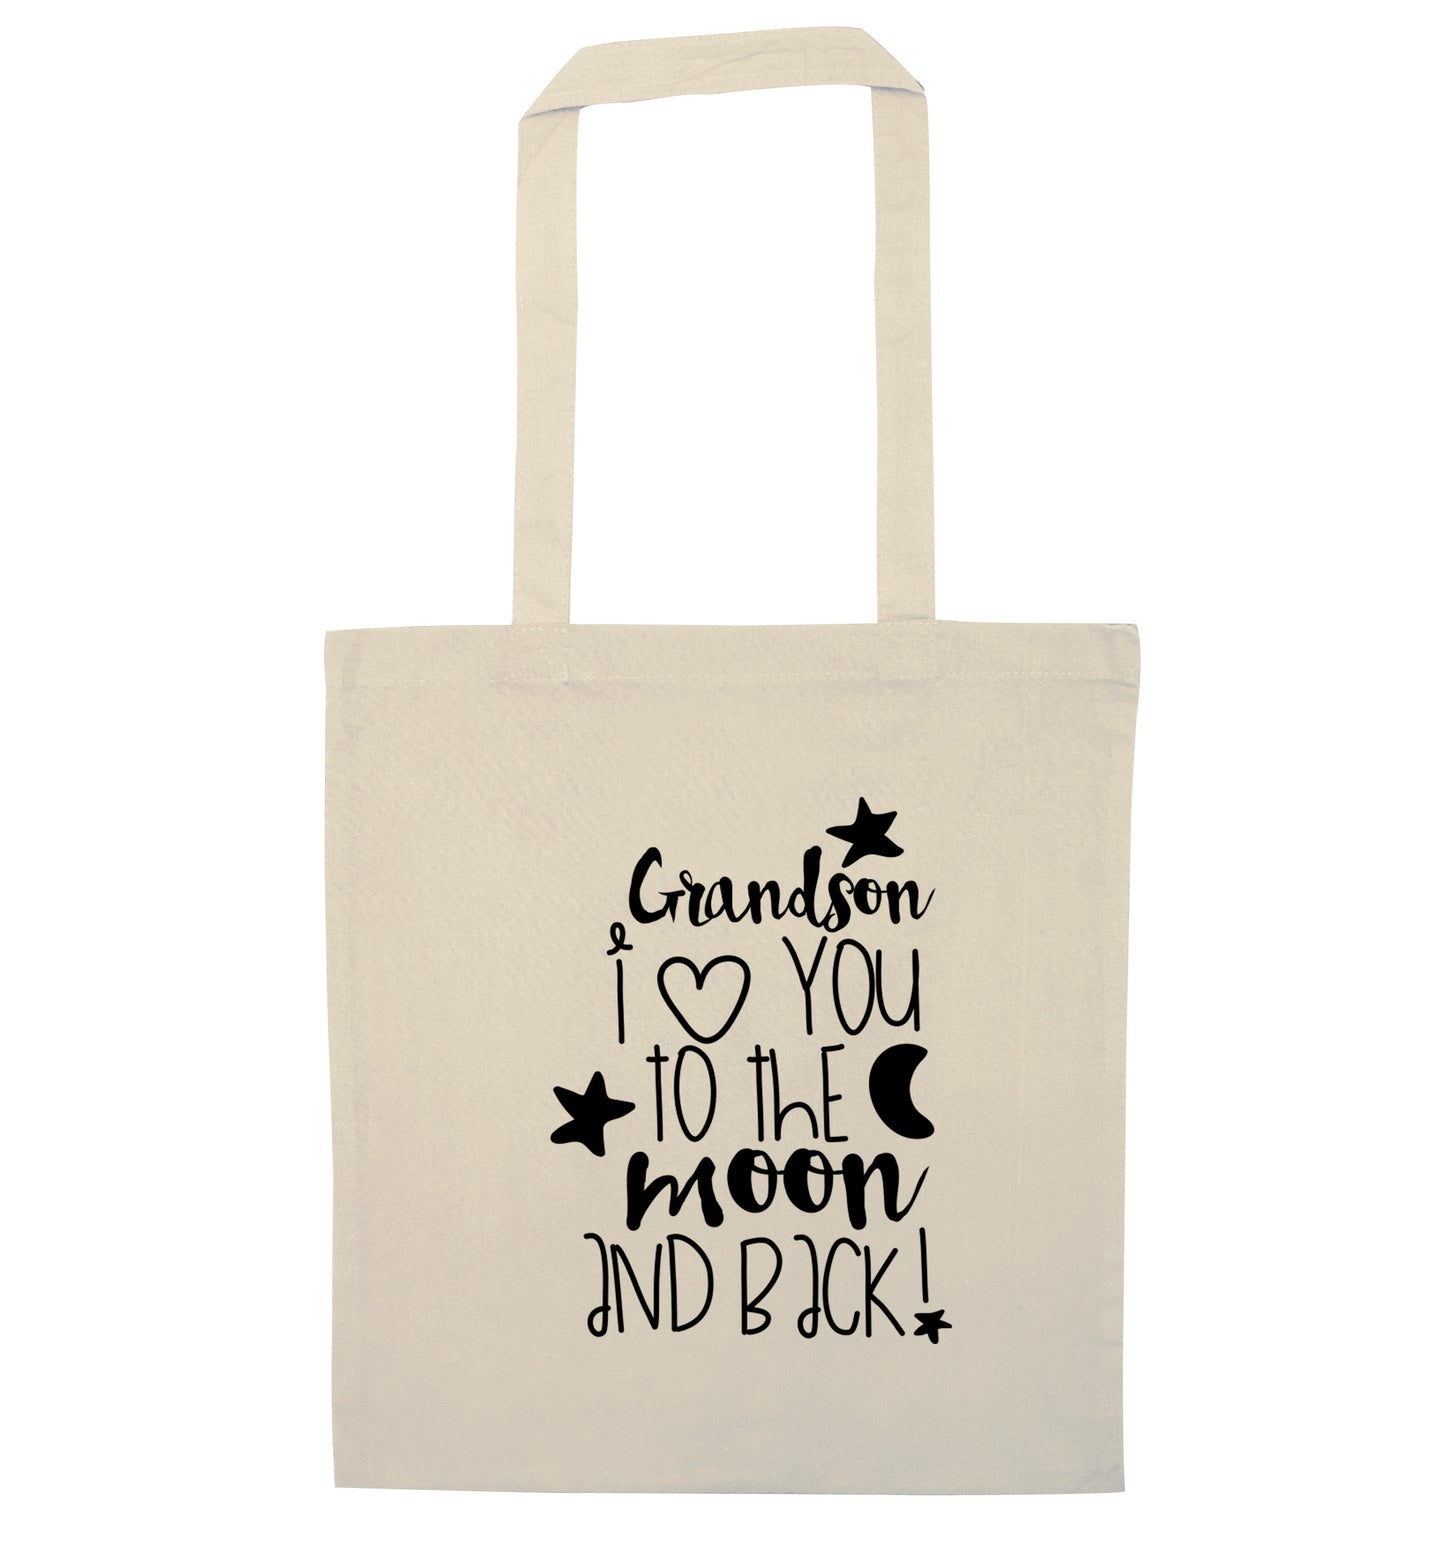 Grandson I love you to the moon and back natural tote bag